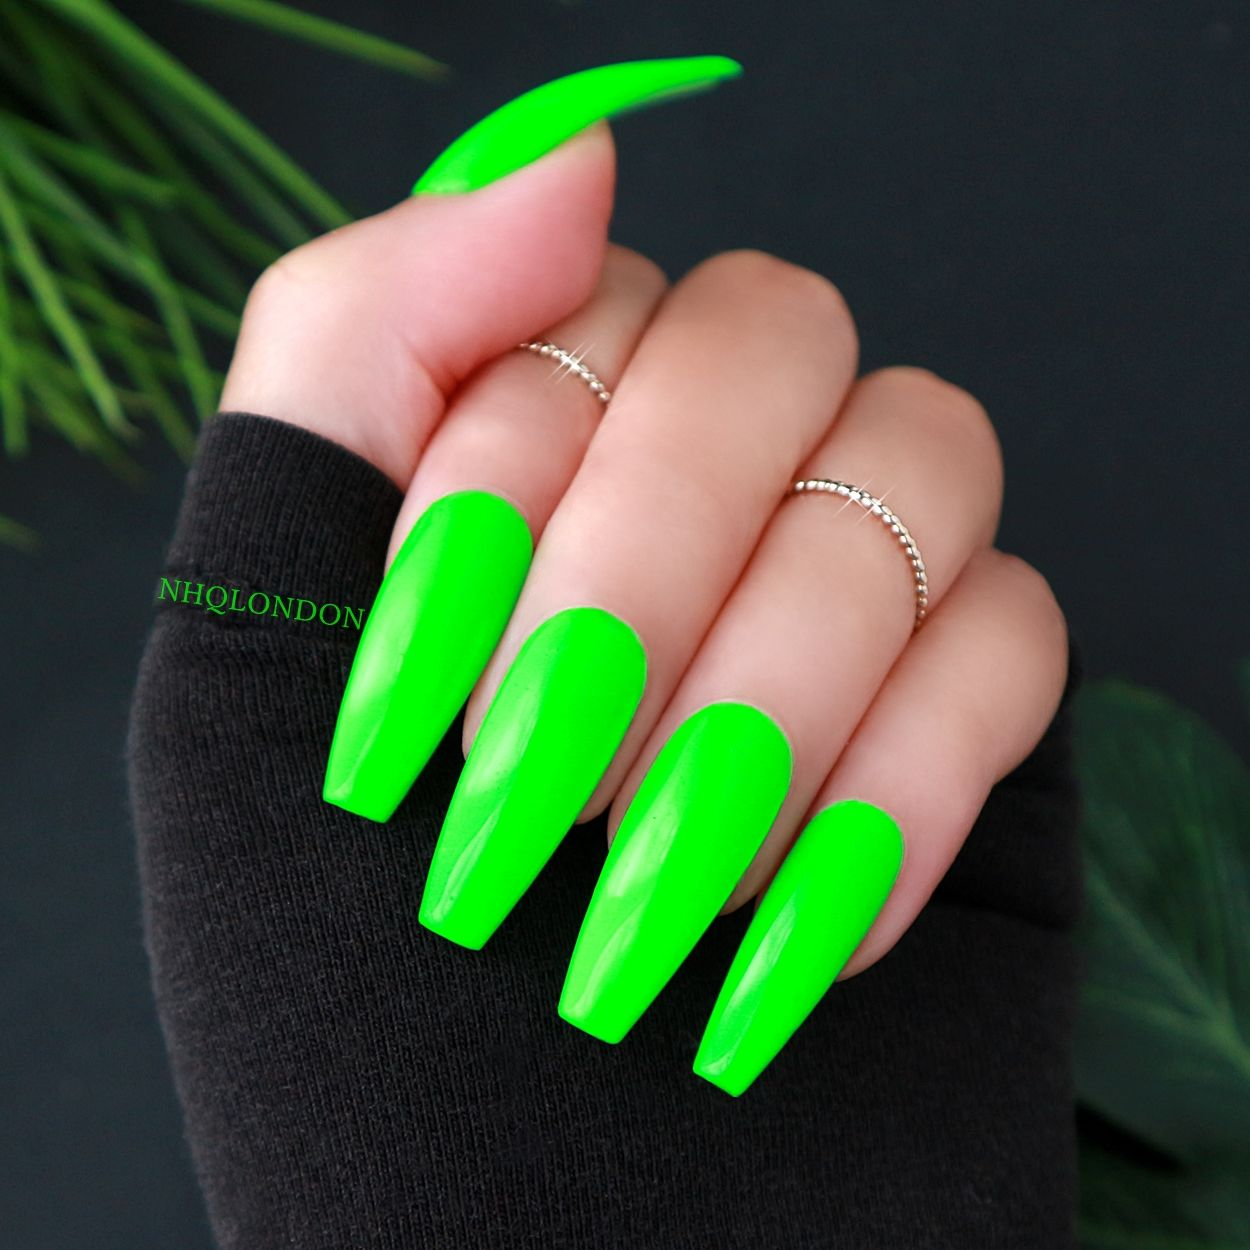 Neon Coffin Nails, Neon Green Nails, NHQ London